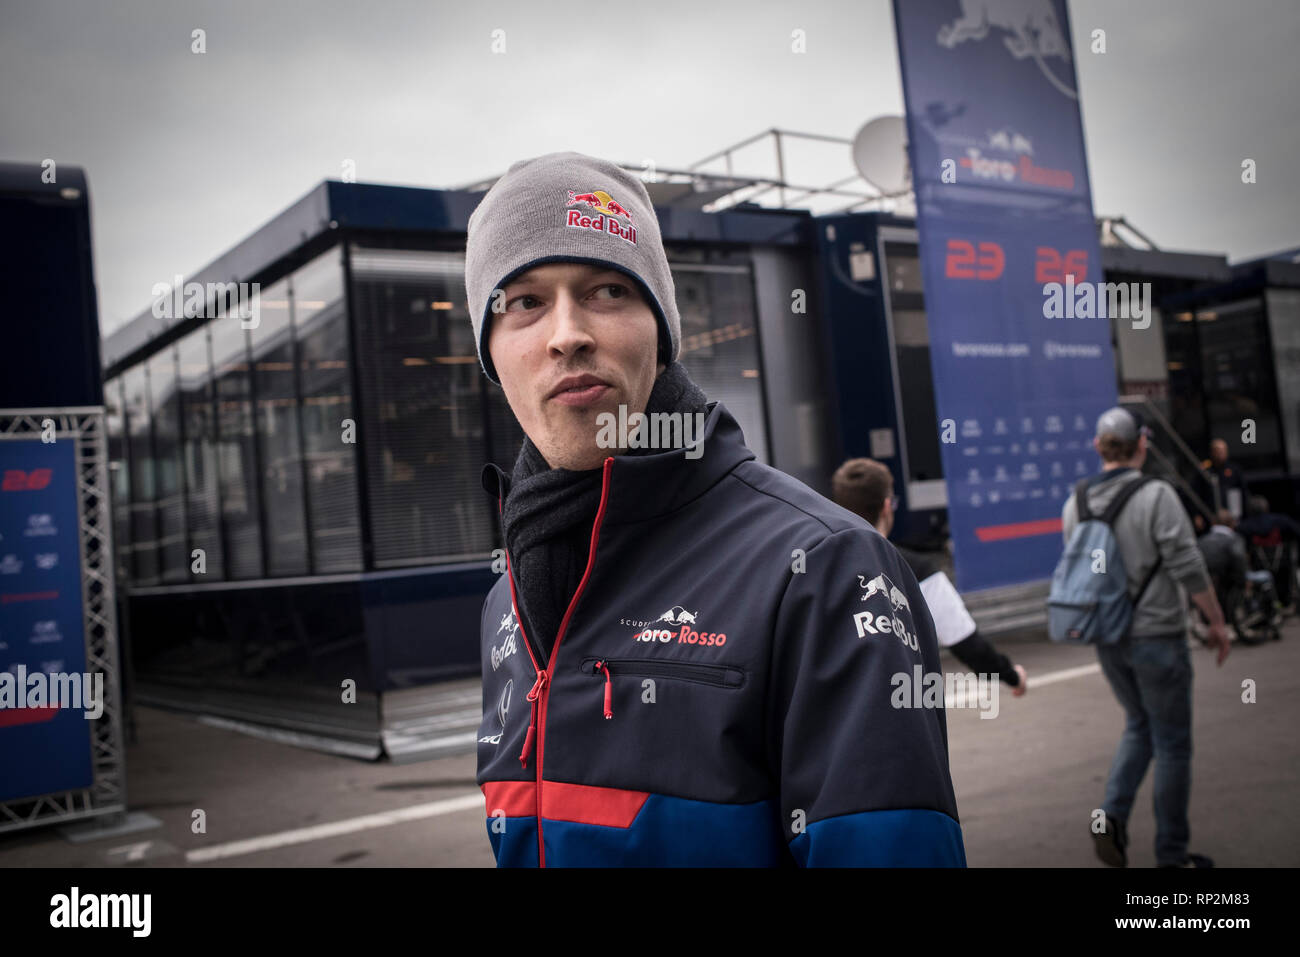 Barcelona, Spain. 20th Feb, 2019.  Daniil Kvyat of Toro Rosso F1 Team   in the Paddock area  at the Circuit de Catalunya in Montmelo (Barcelona province) during the pre-season testing session. Credit:  Jordi Boixareu/Alamy Live News - Stock Image